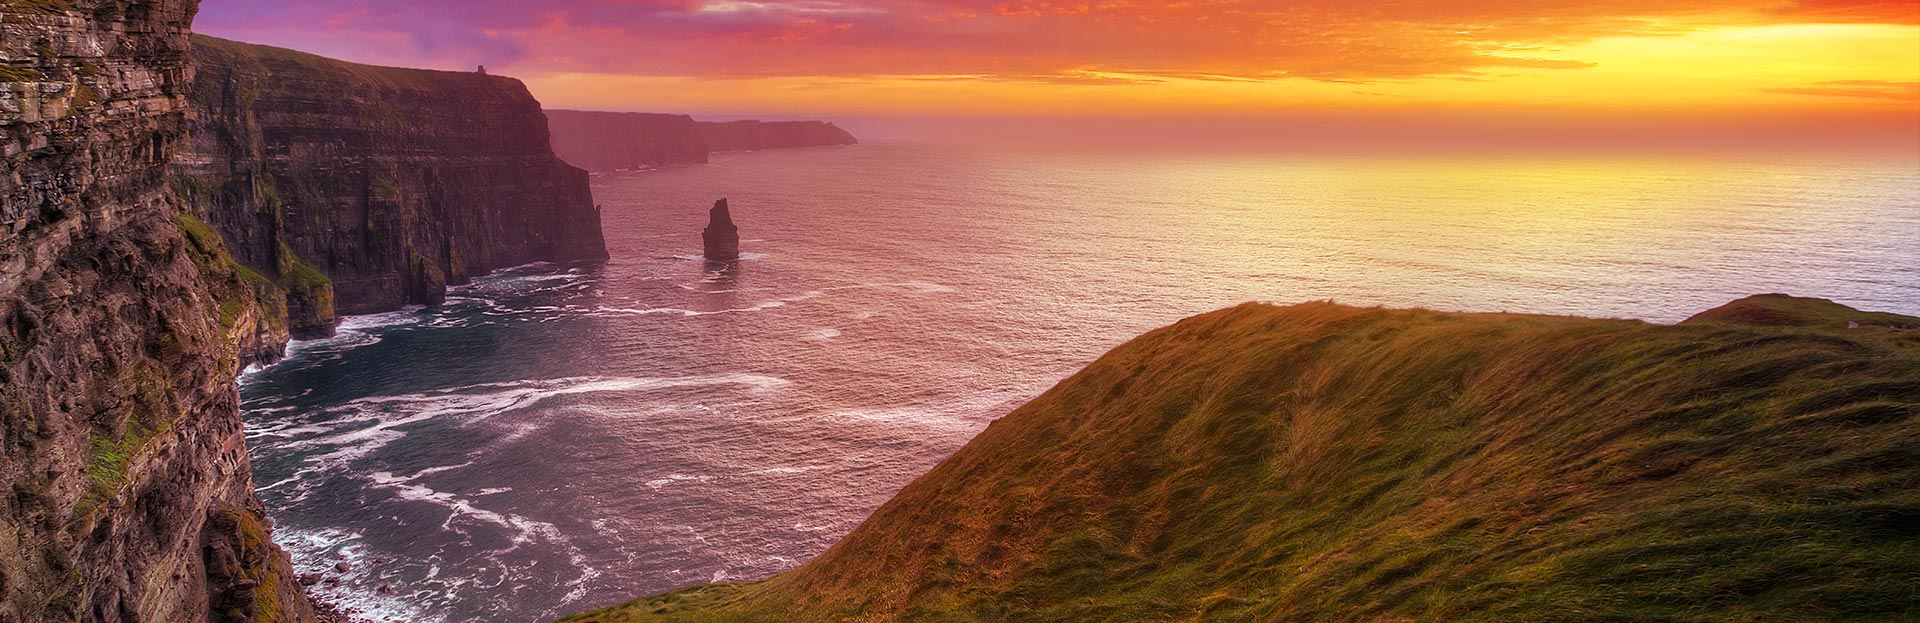 Ireland Vacations Packages From Canada Tripcentralca - Irish vacations